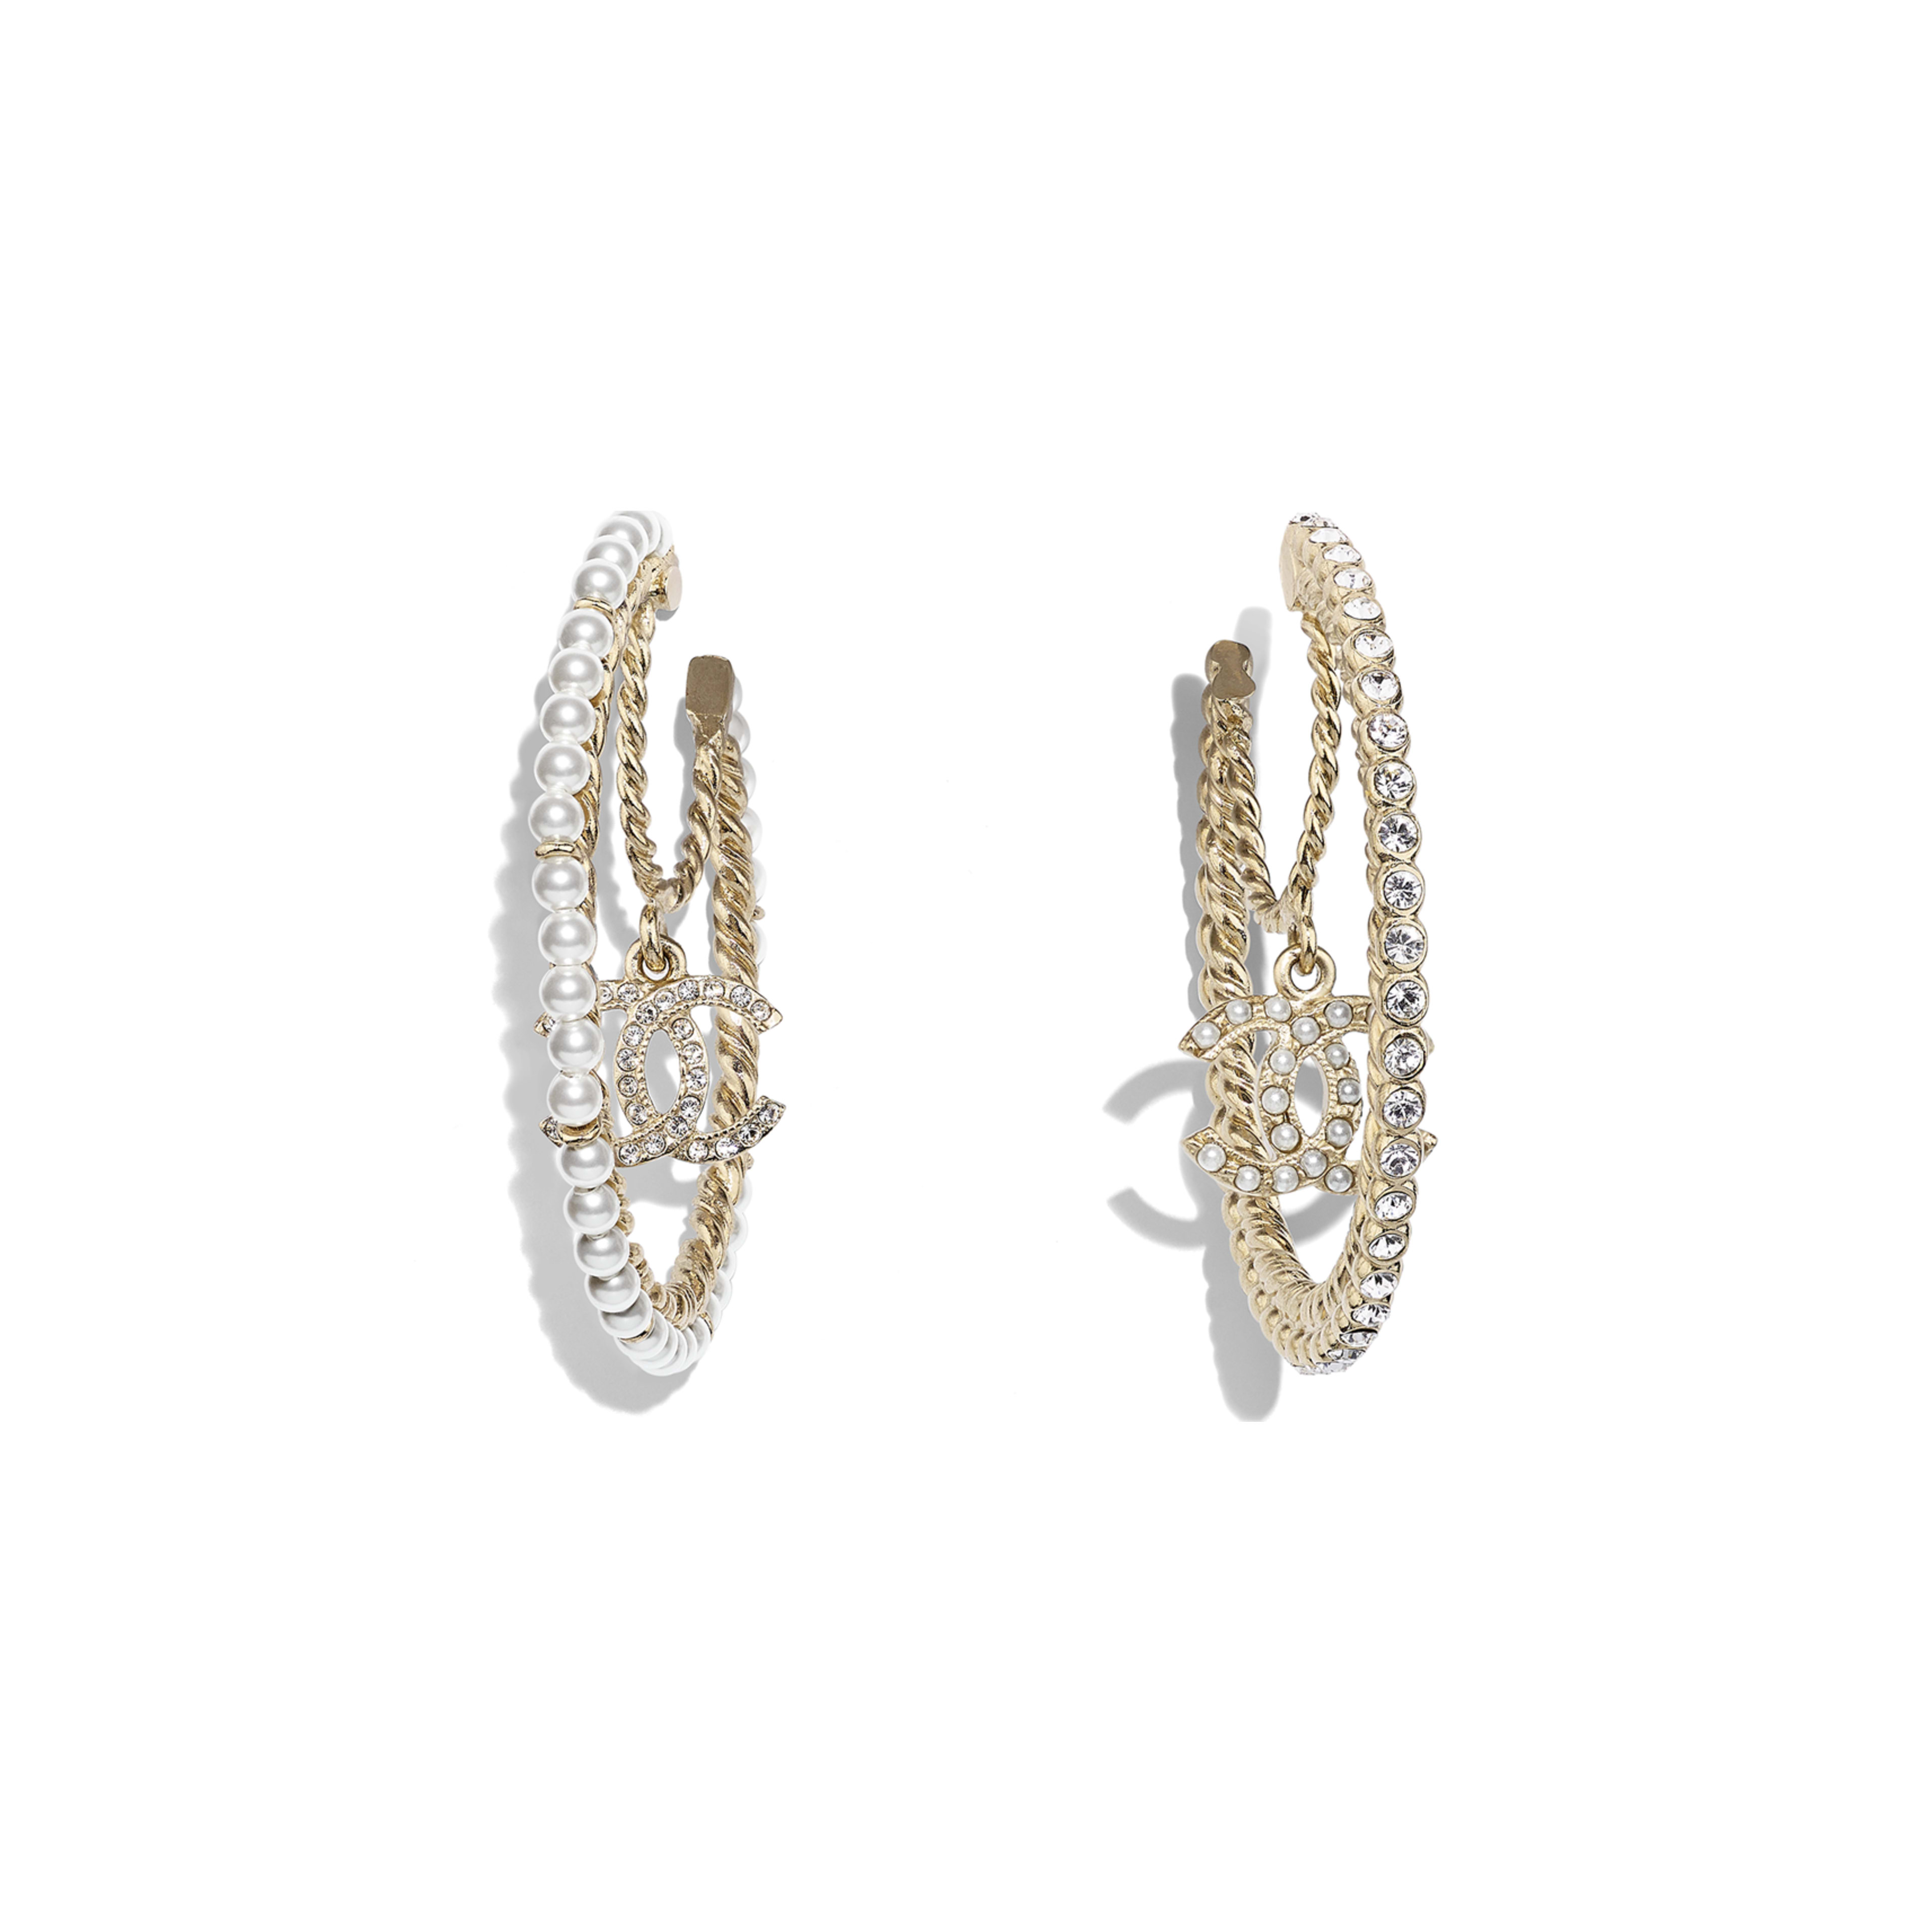 Earrings - Gold, Pearly White & Crystal - Metal, Glass Pearls & Diamantés - Default view - see full sized version